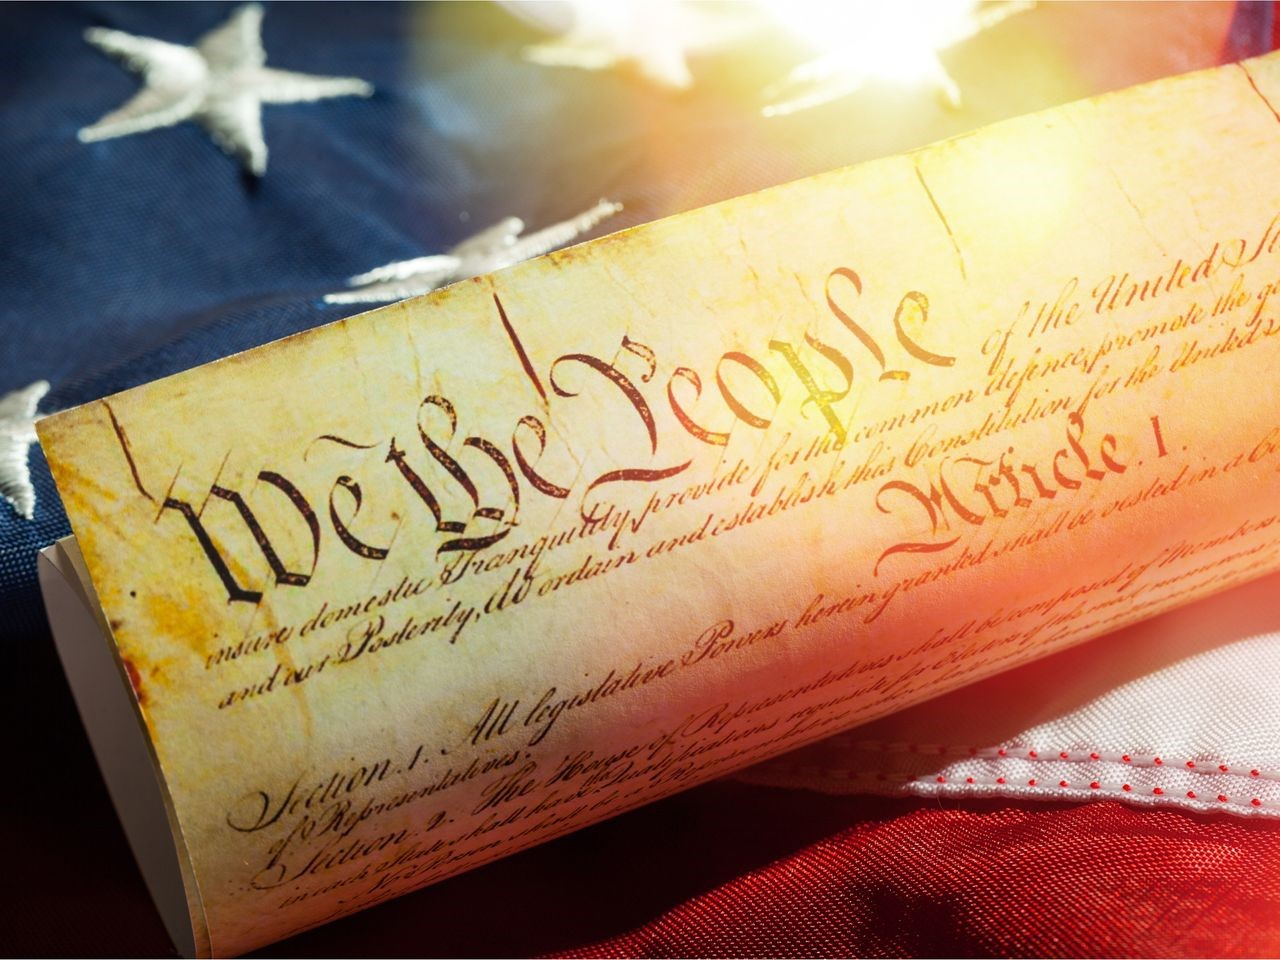 Watch videos about the Constitution!